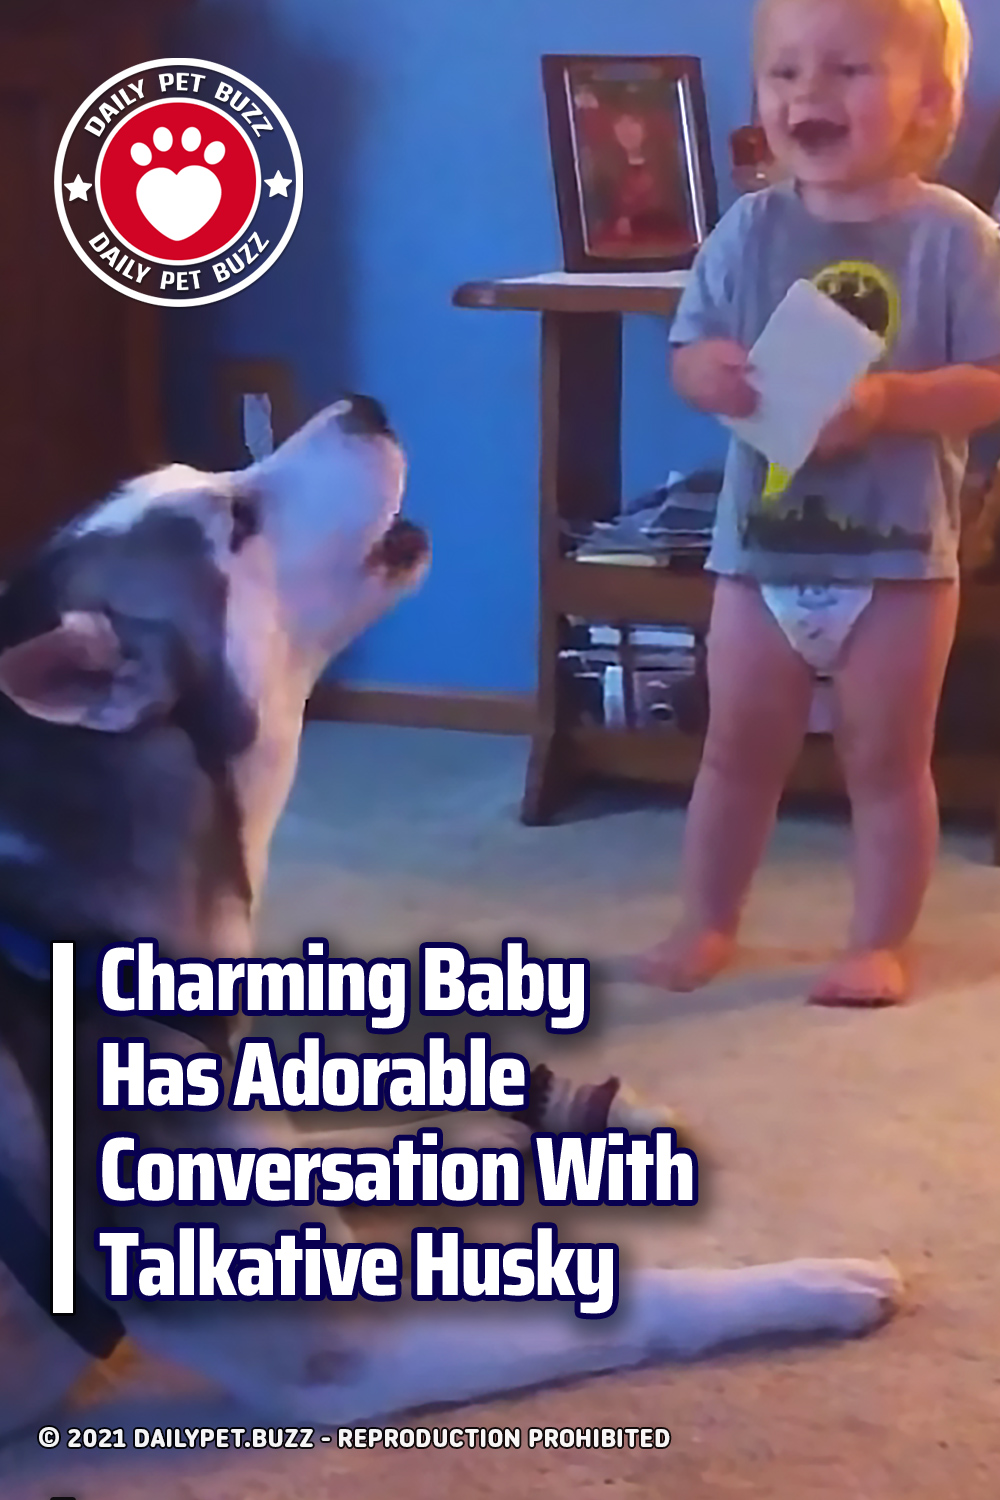 Charming Baby Has Adorable Conversation With Talkative Husky